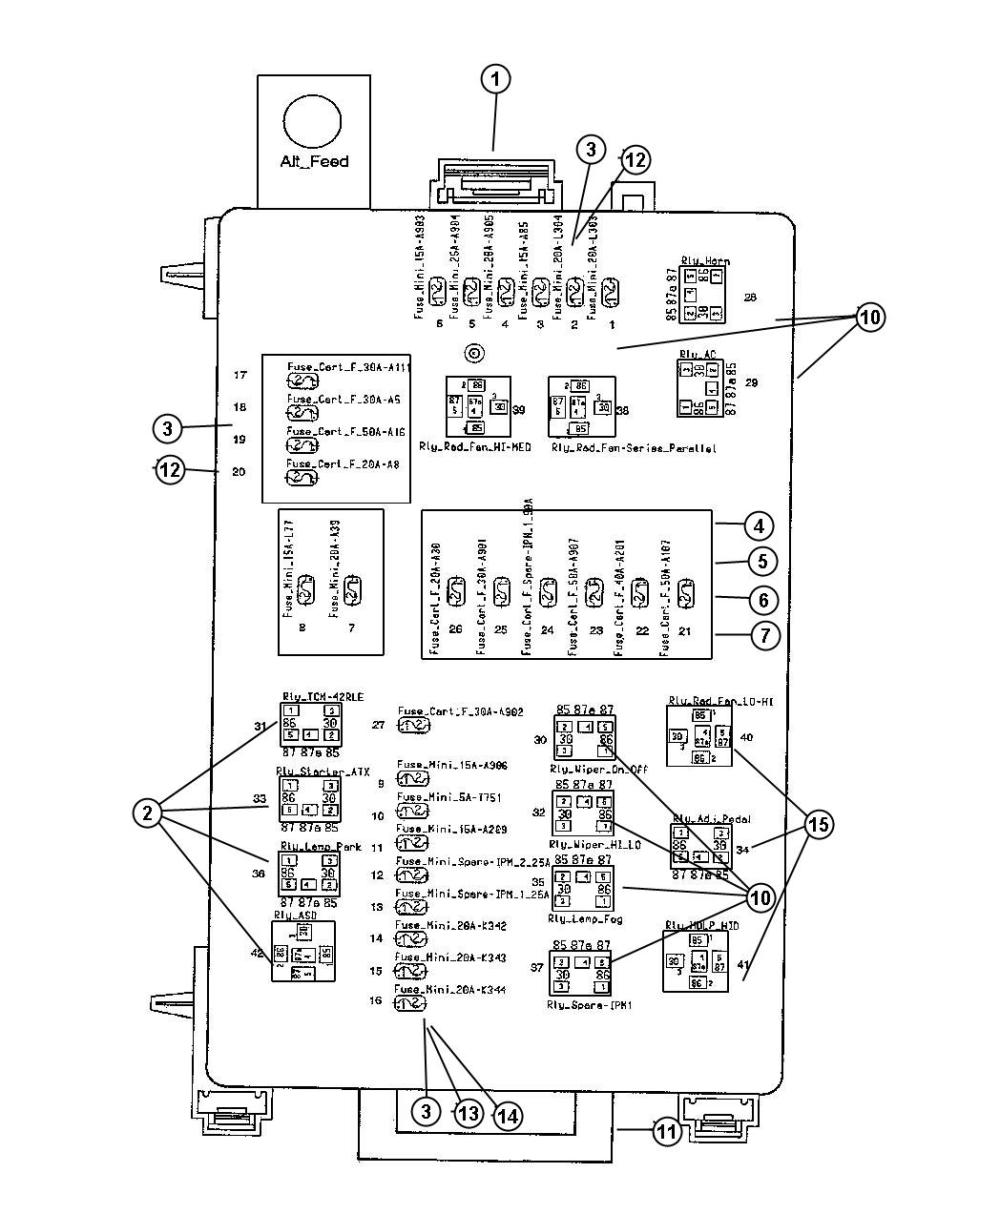 medium resolution of fuse box map 130x300 2005 dodge magnum underhood wiring diagrams 2005 dodge magnum pump engine diagram